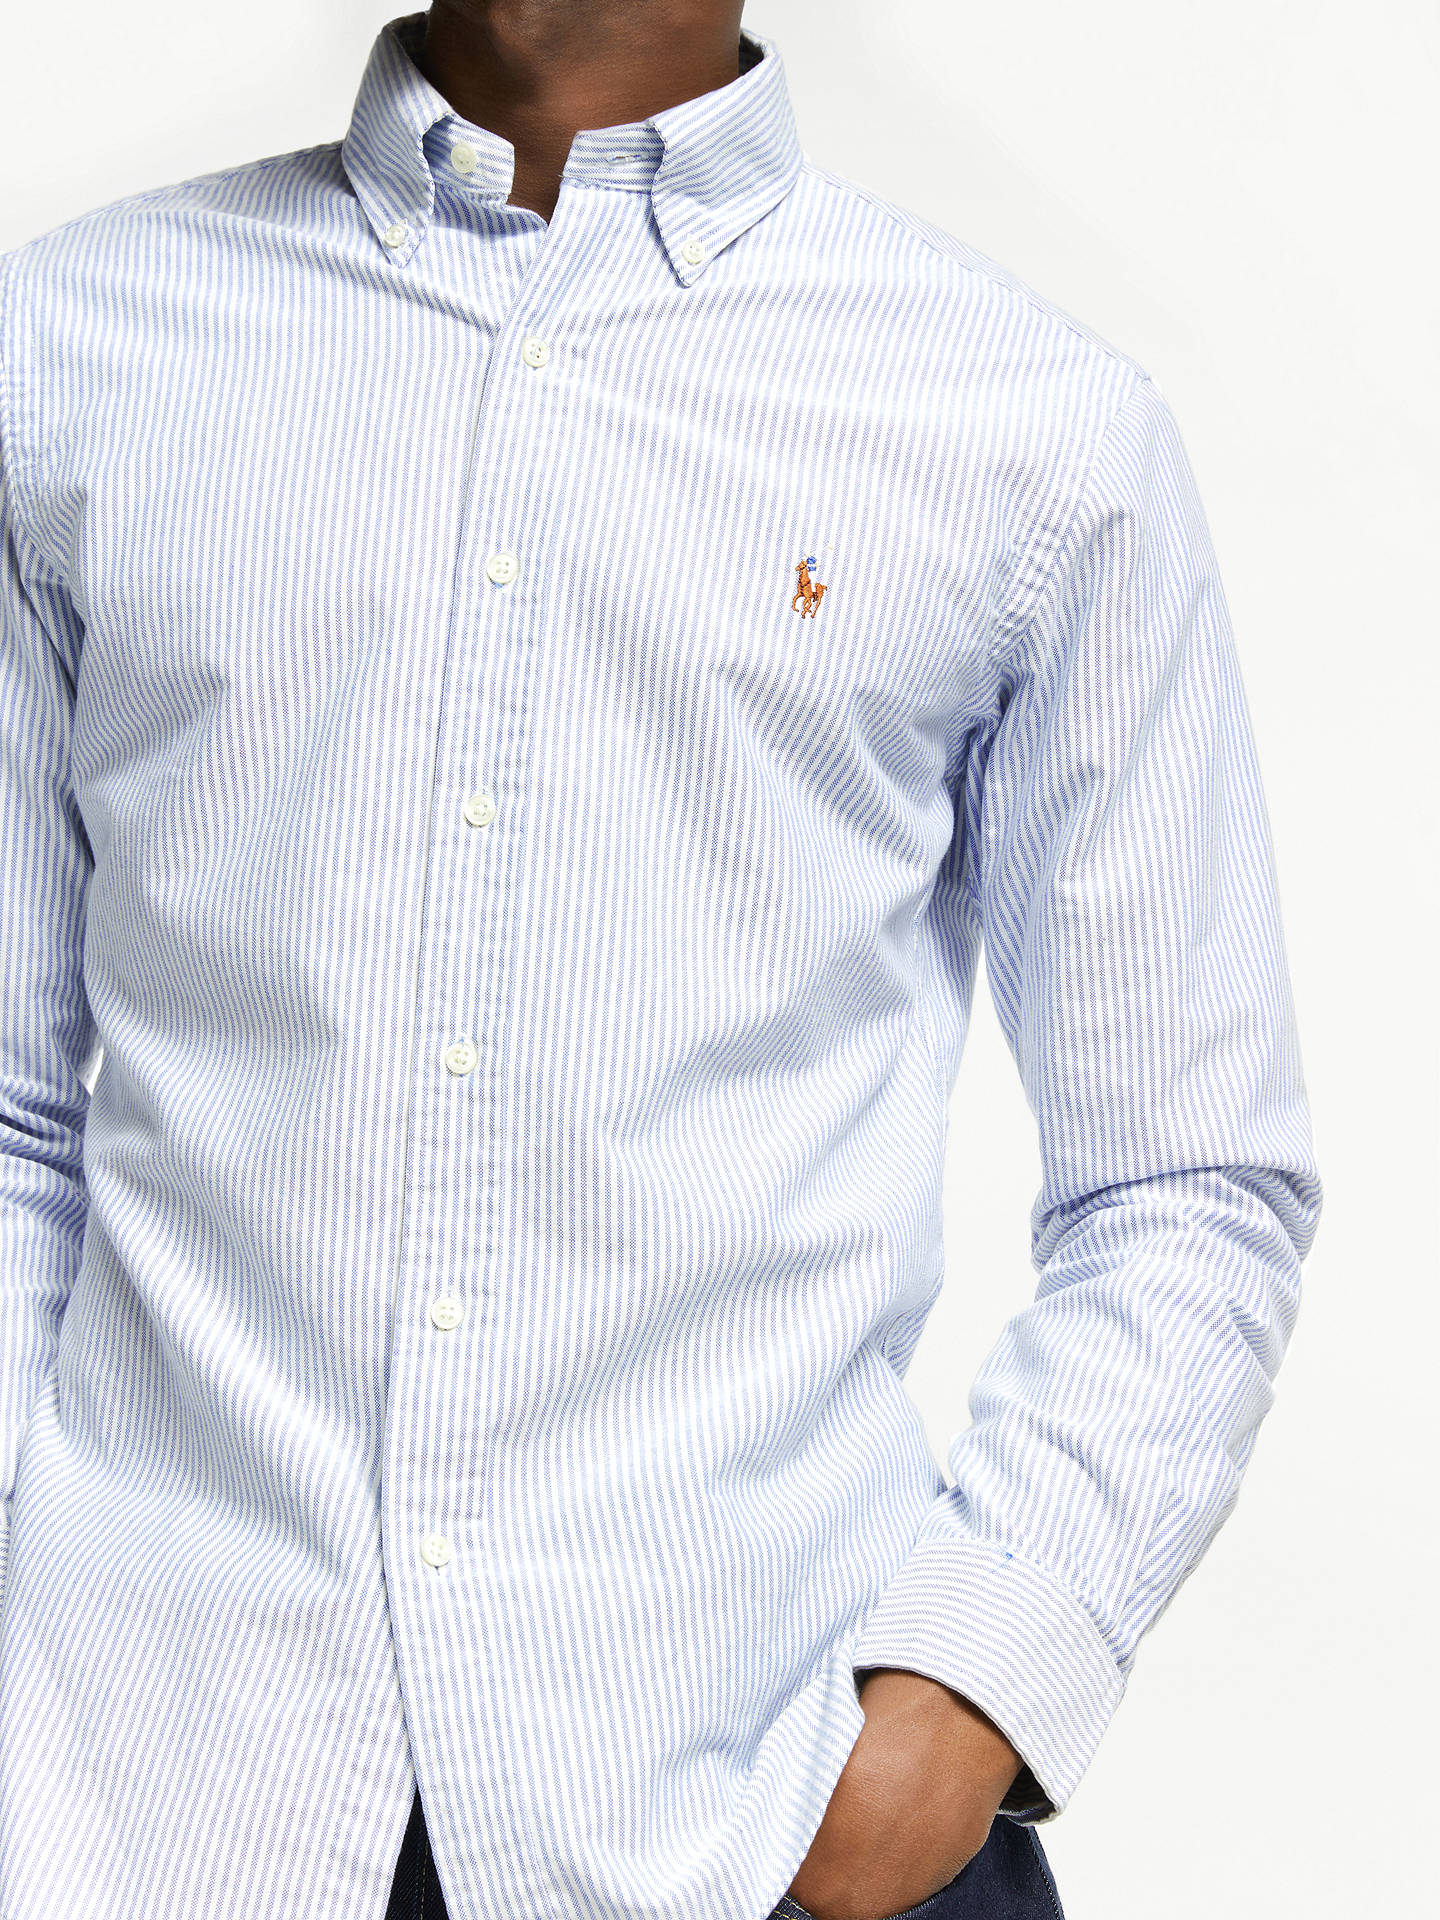 c09aa176 Buy Polo Ralph Lauren Slim Fit Striped Oxford Shirt, Blue/White, S Online  ...